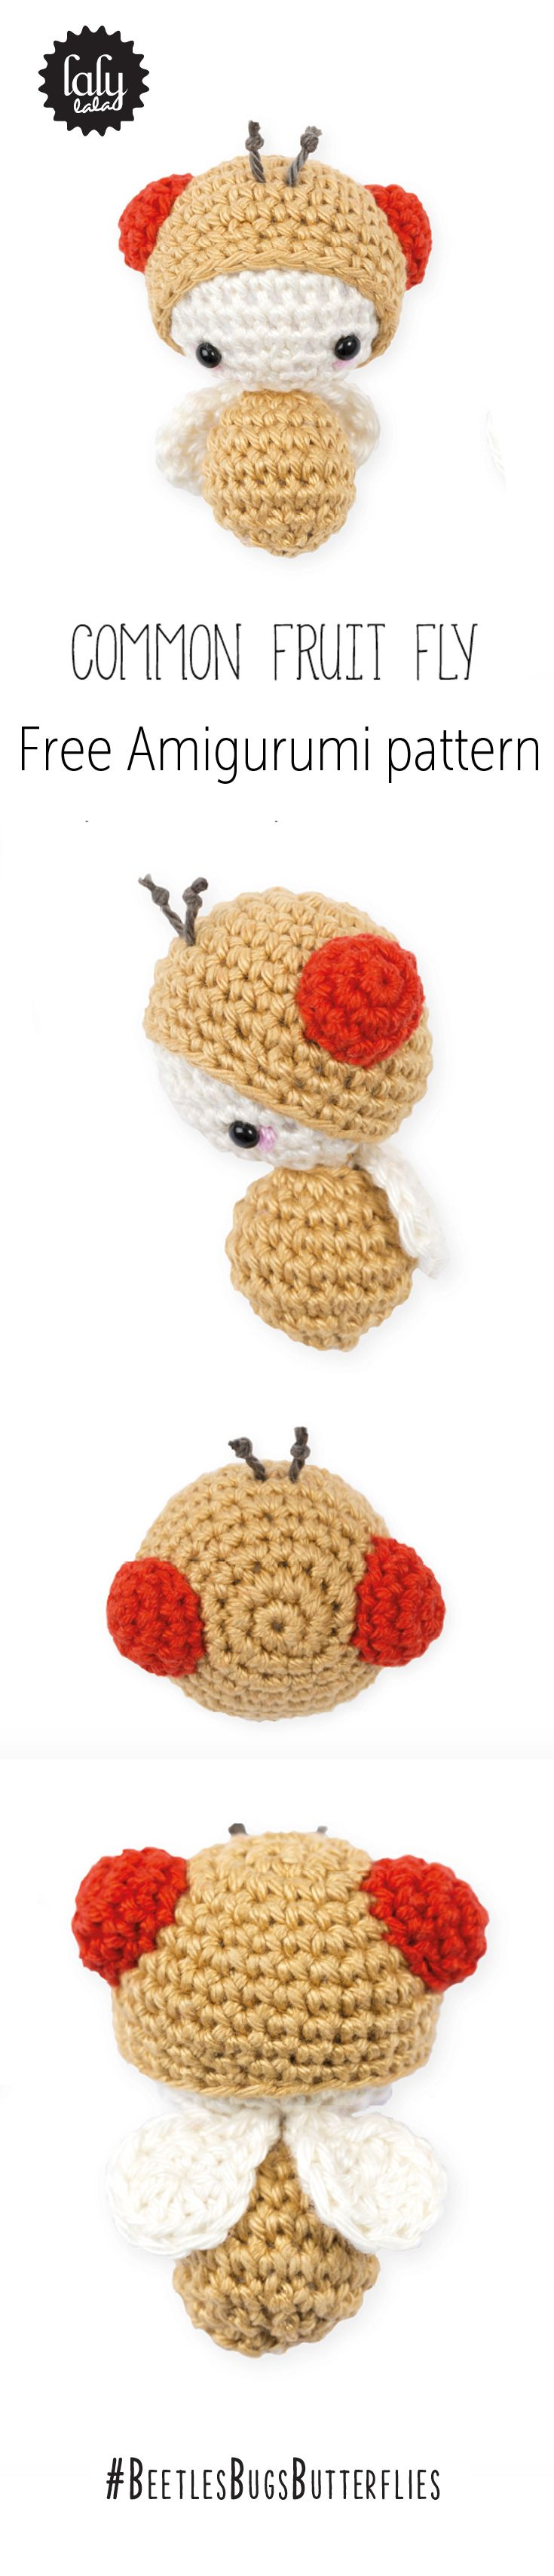 Who would have thought the Common Fruit Fly could be so cute! This cute creature is an extra from Lalylala's new book Beetles, Bugs and Butterflies.